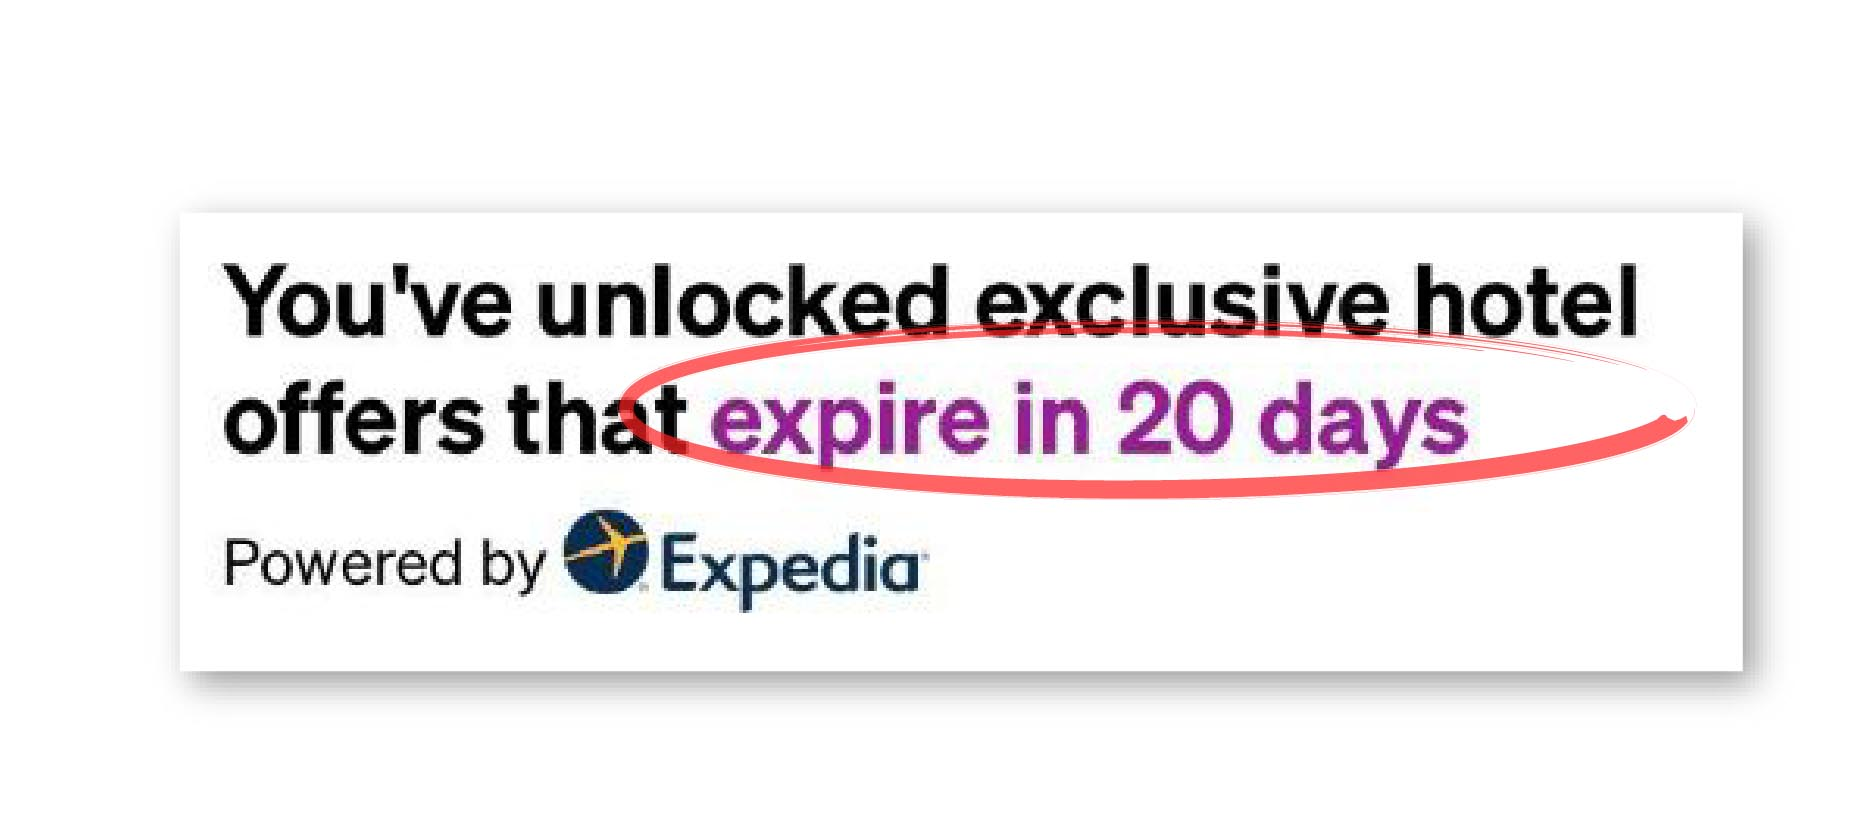 behavioralne principy portalu Expedia